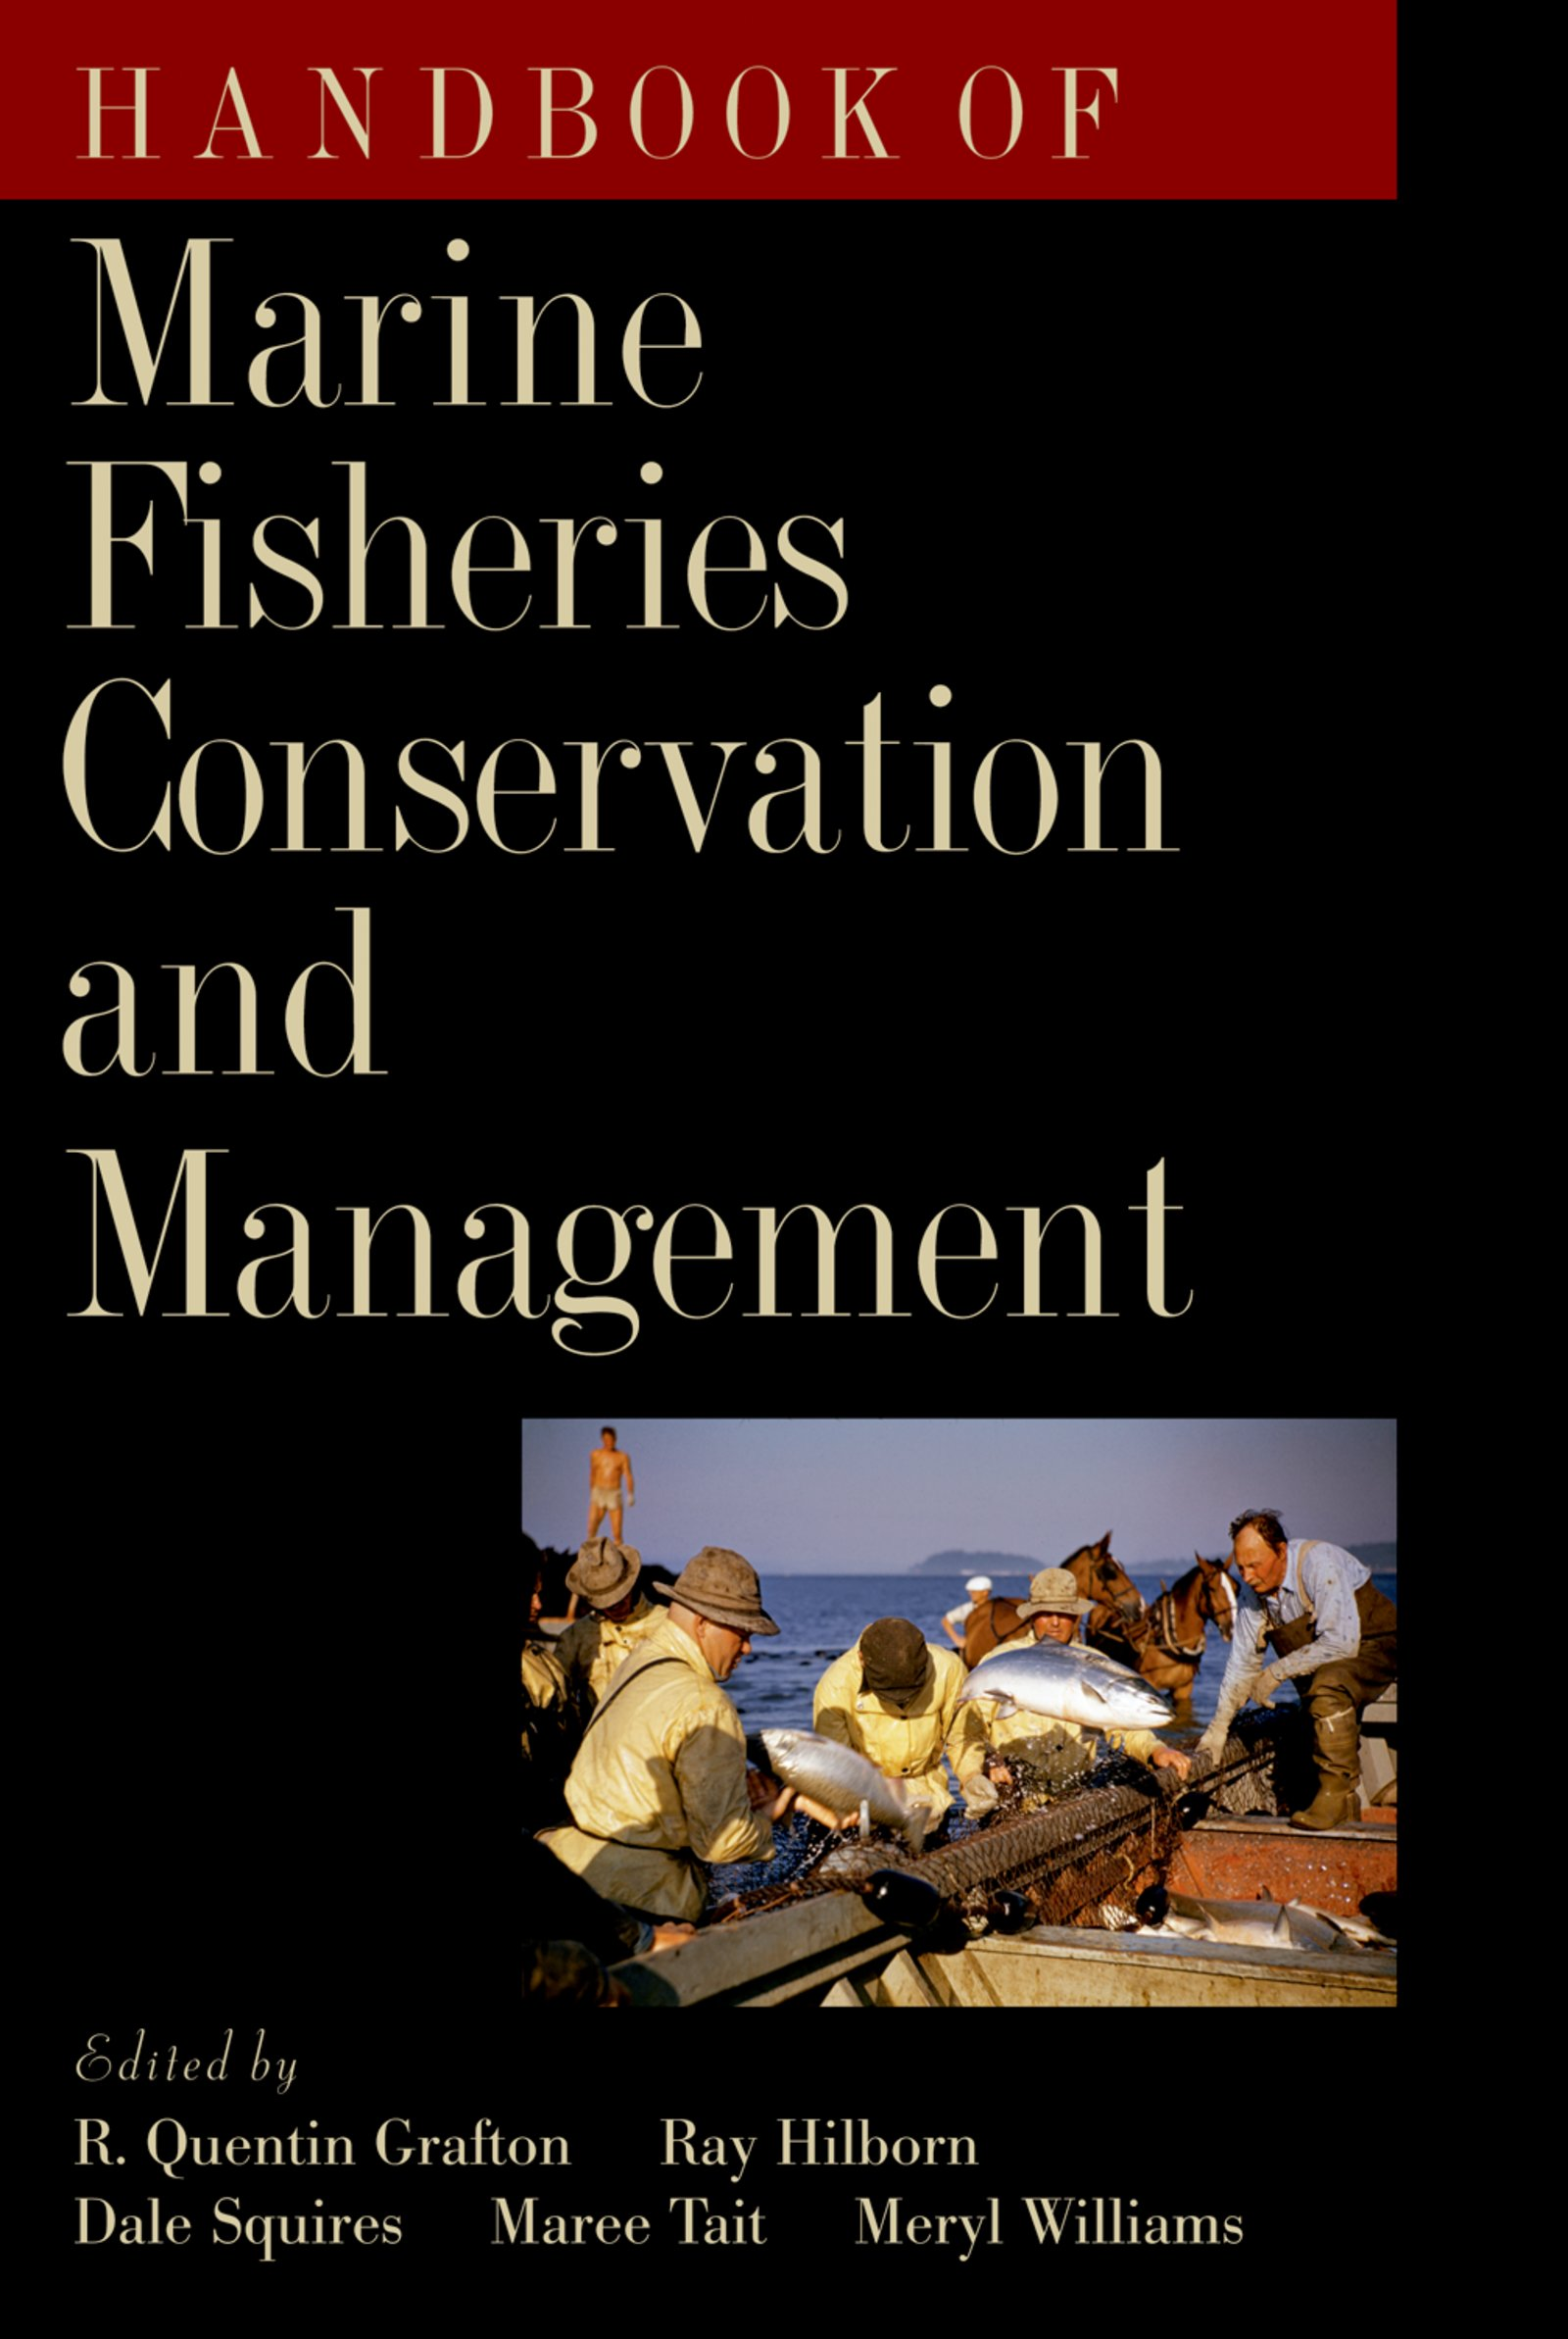 Download Ebook Handbook of Marine Fisheries Conservation and Management by R. Quentin Grafton Pdf